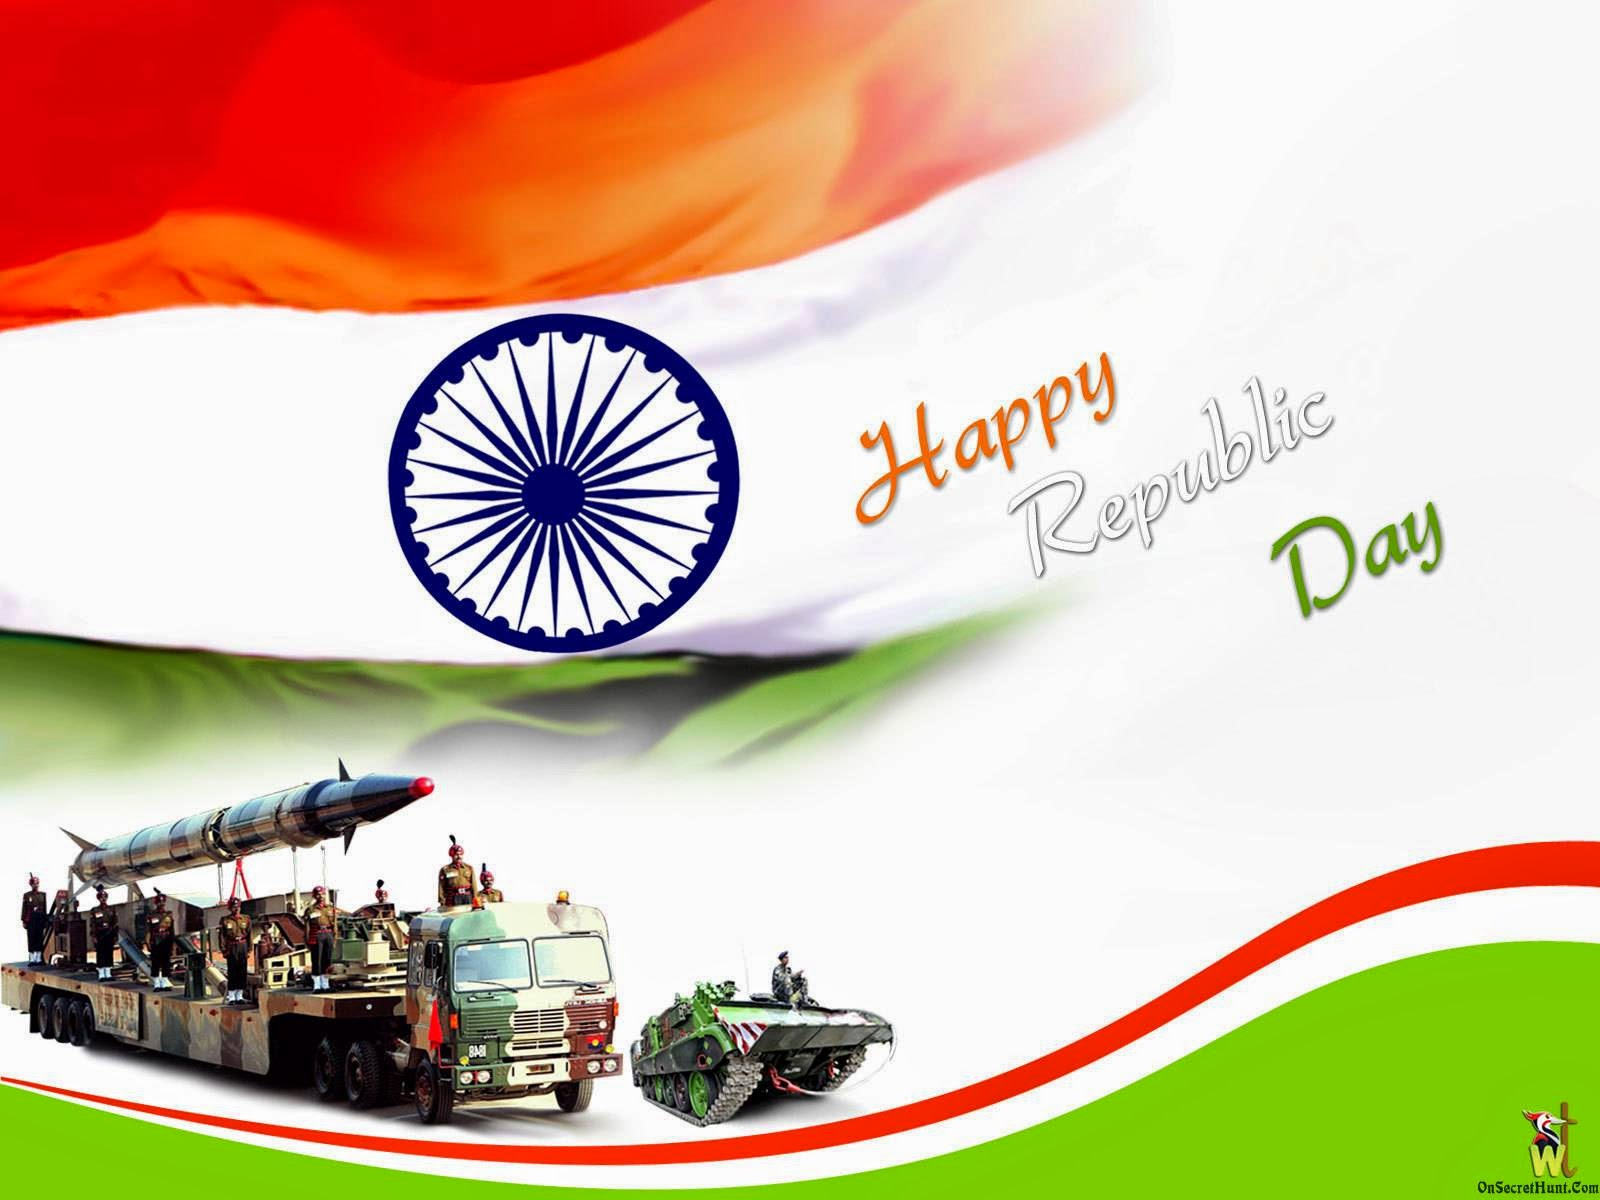 Happy Republic Day 2015 Images for Wishing